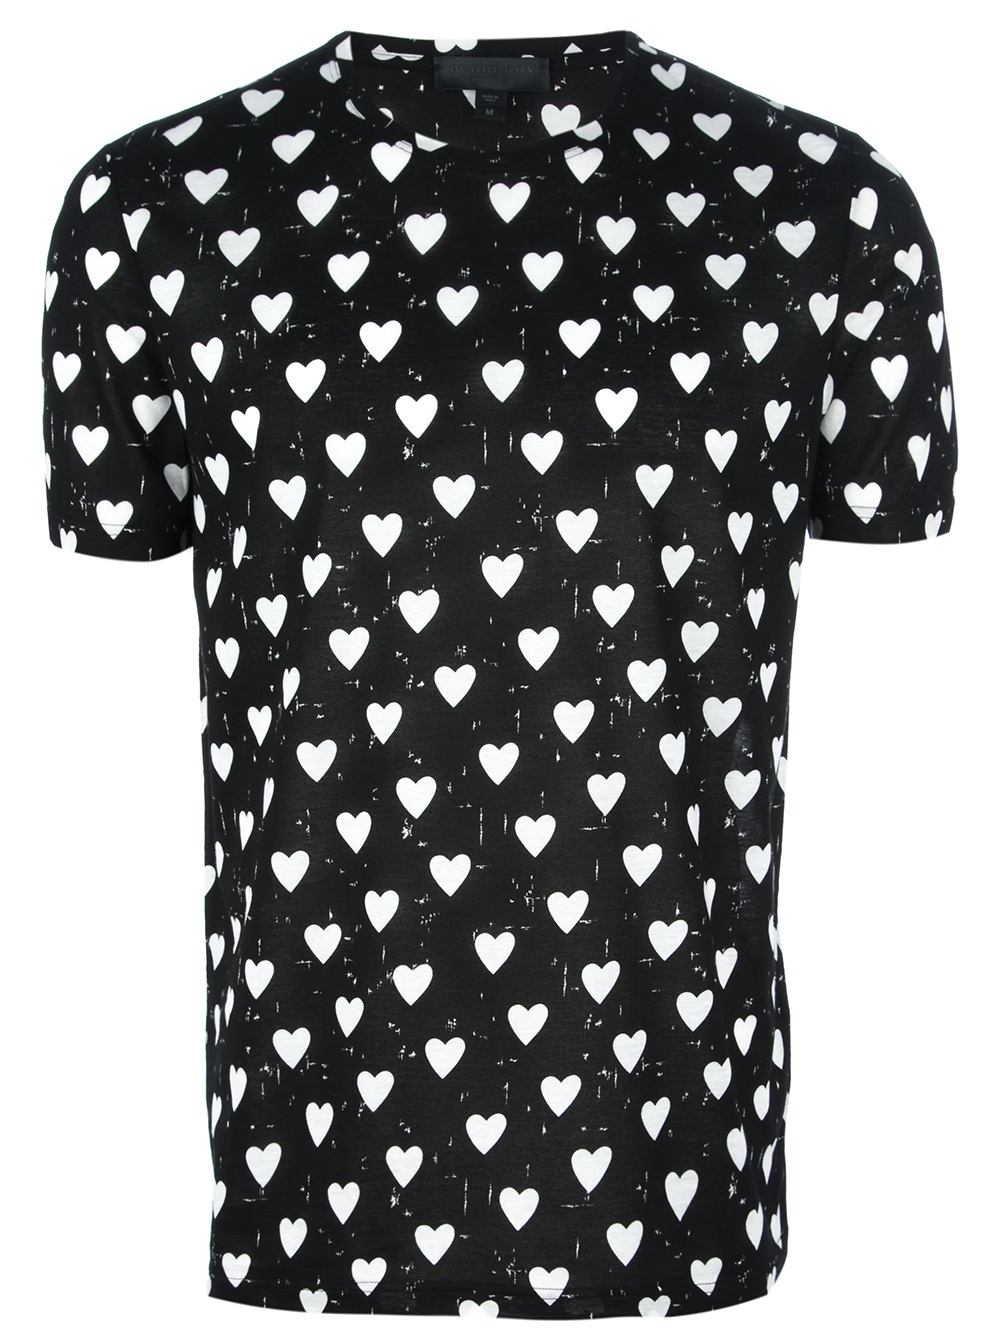 Lyst Burberry Prorsum Heart Print Tshirt In Black For Men